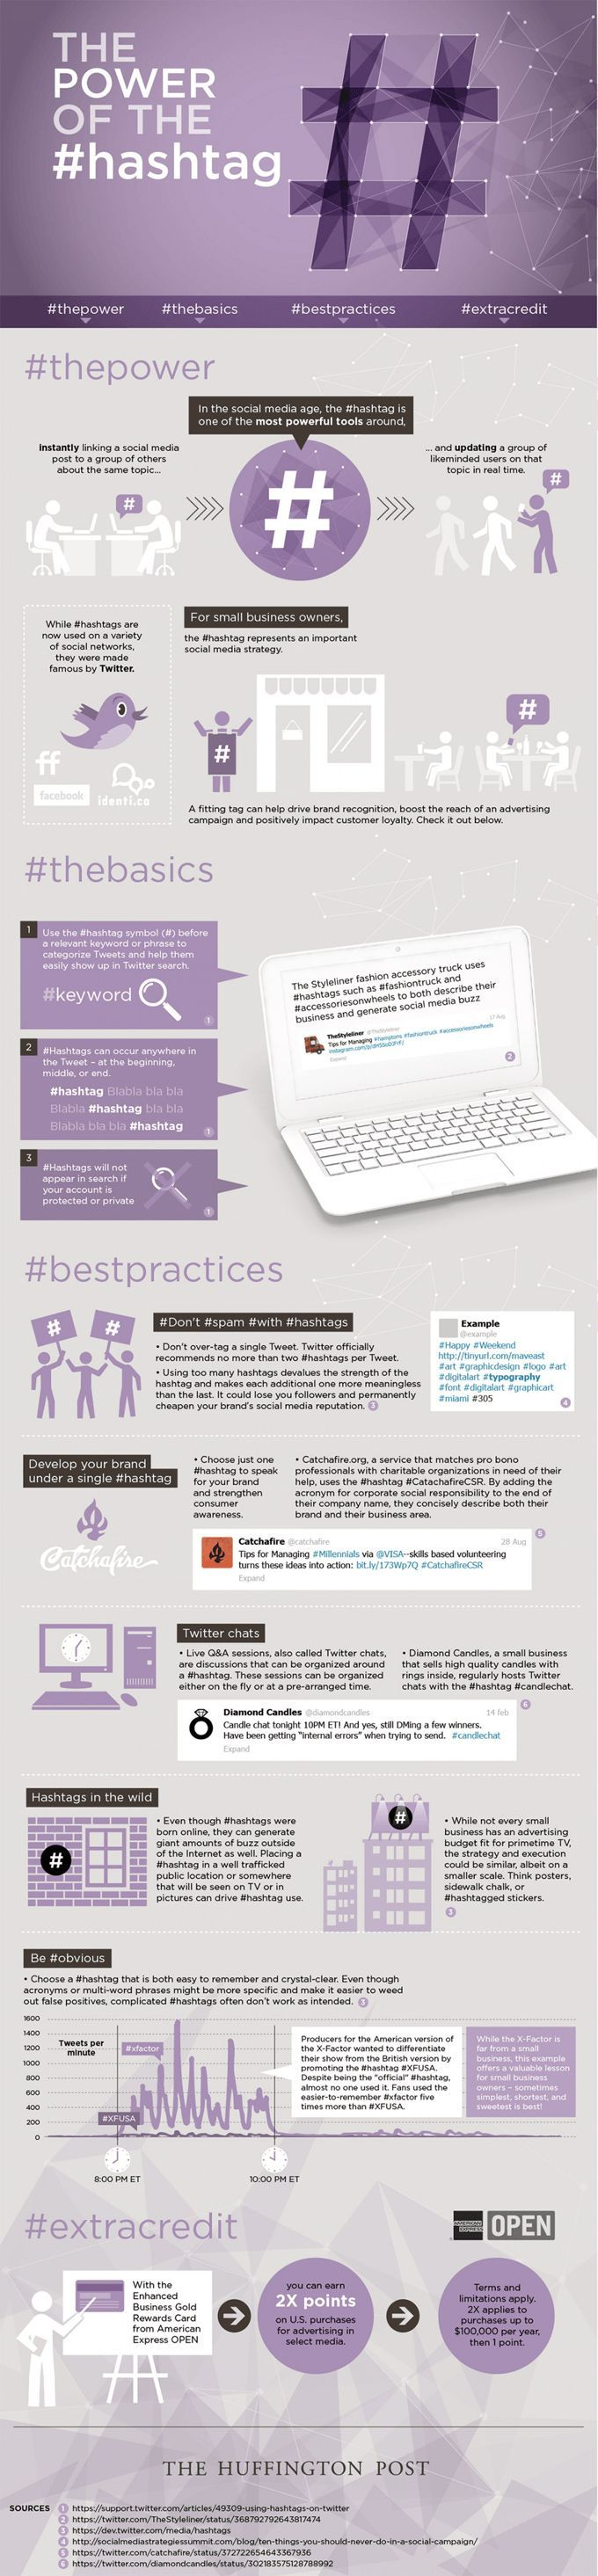 Business infographic : How To Use Hashtags To Grow Your Business [Infographic]  JohnEEngle.com